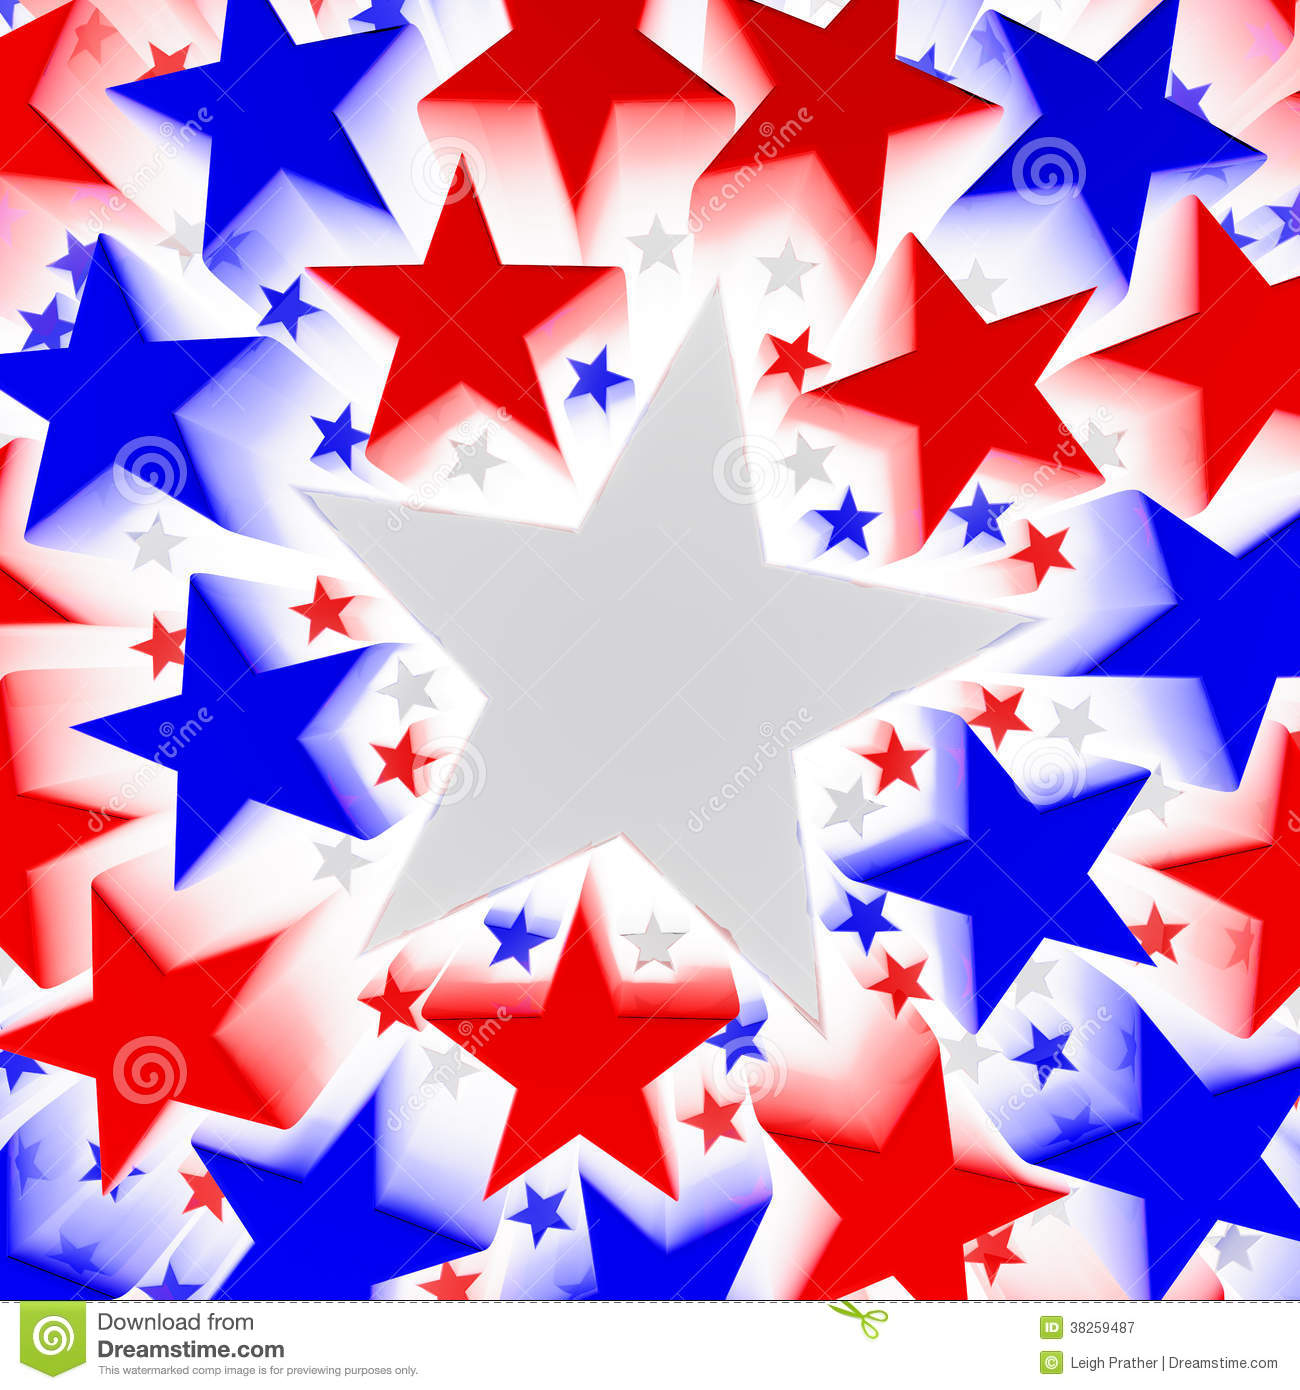 Red, White, And Blue Stars Royalty Free Stock Photography ... - photo#36